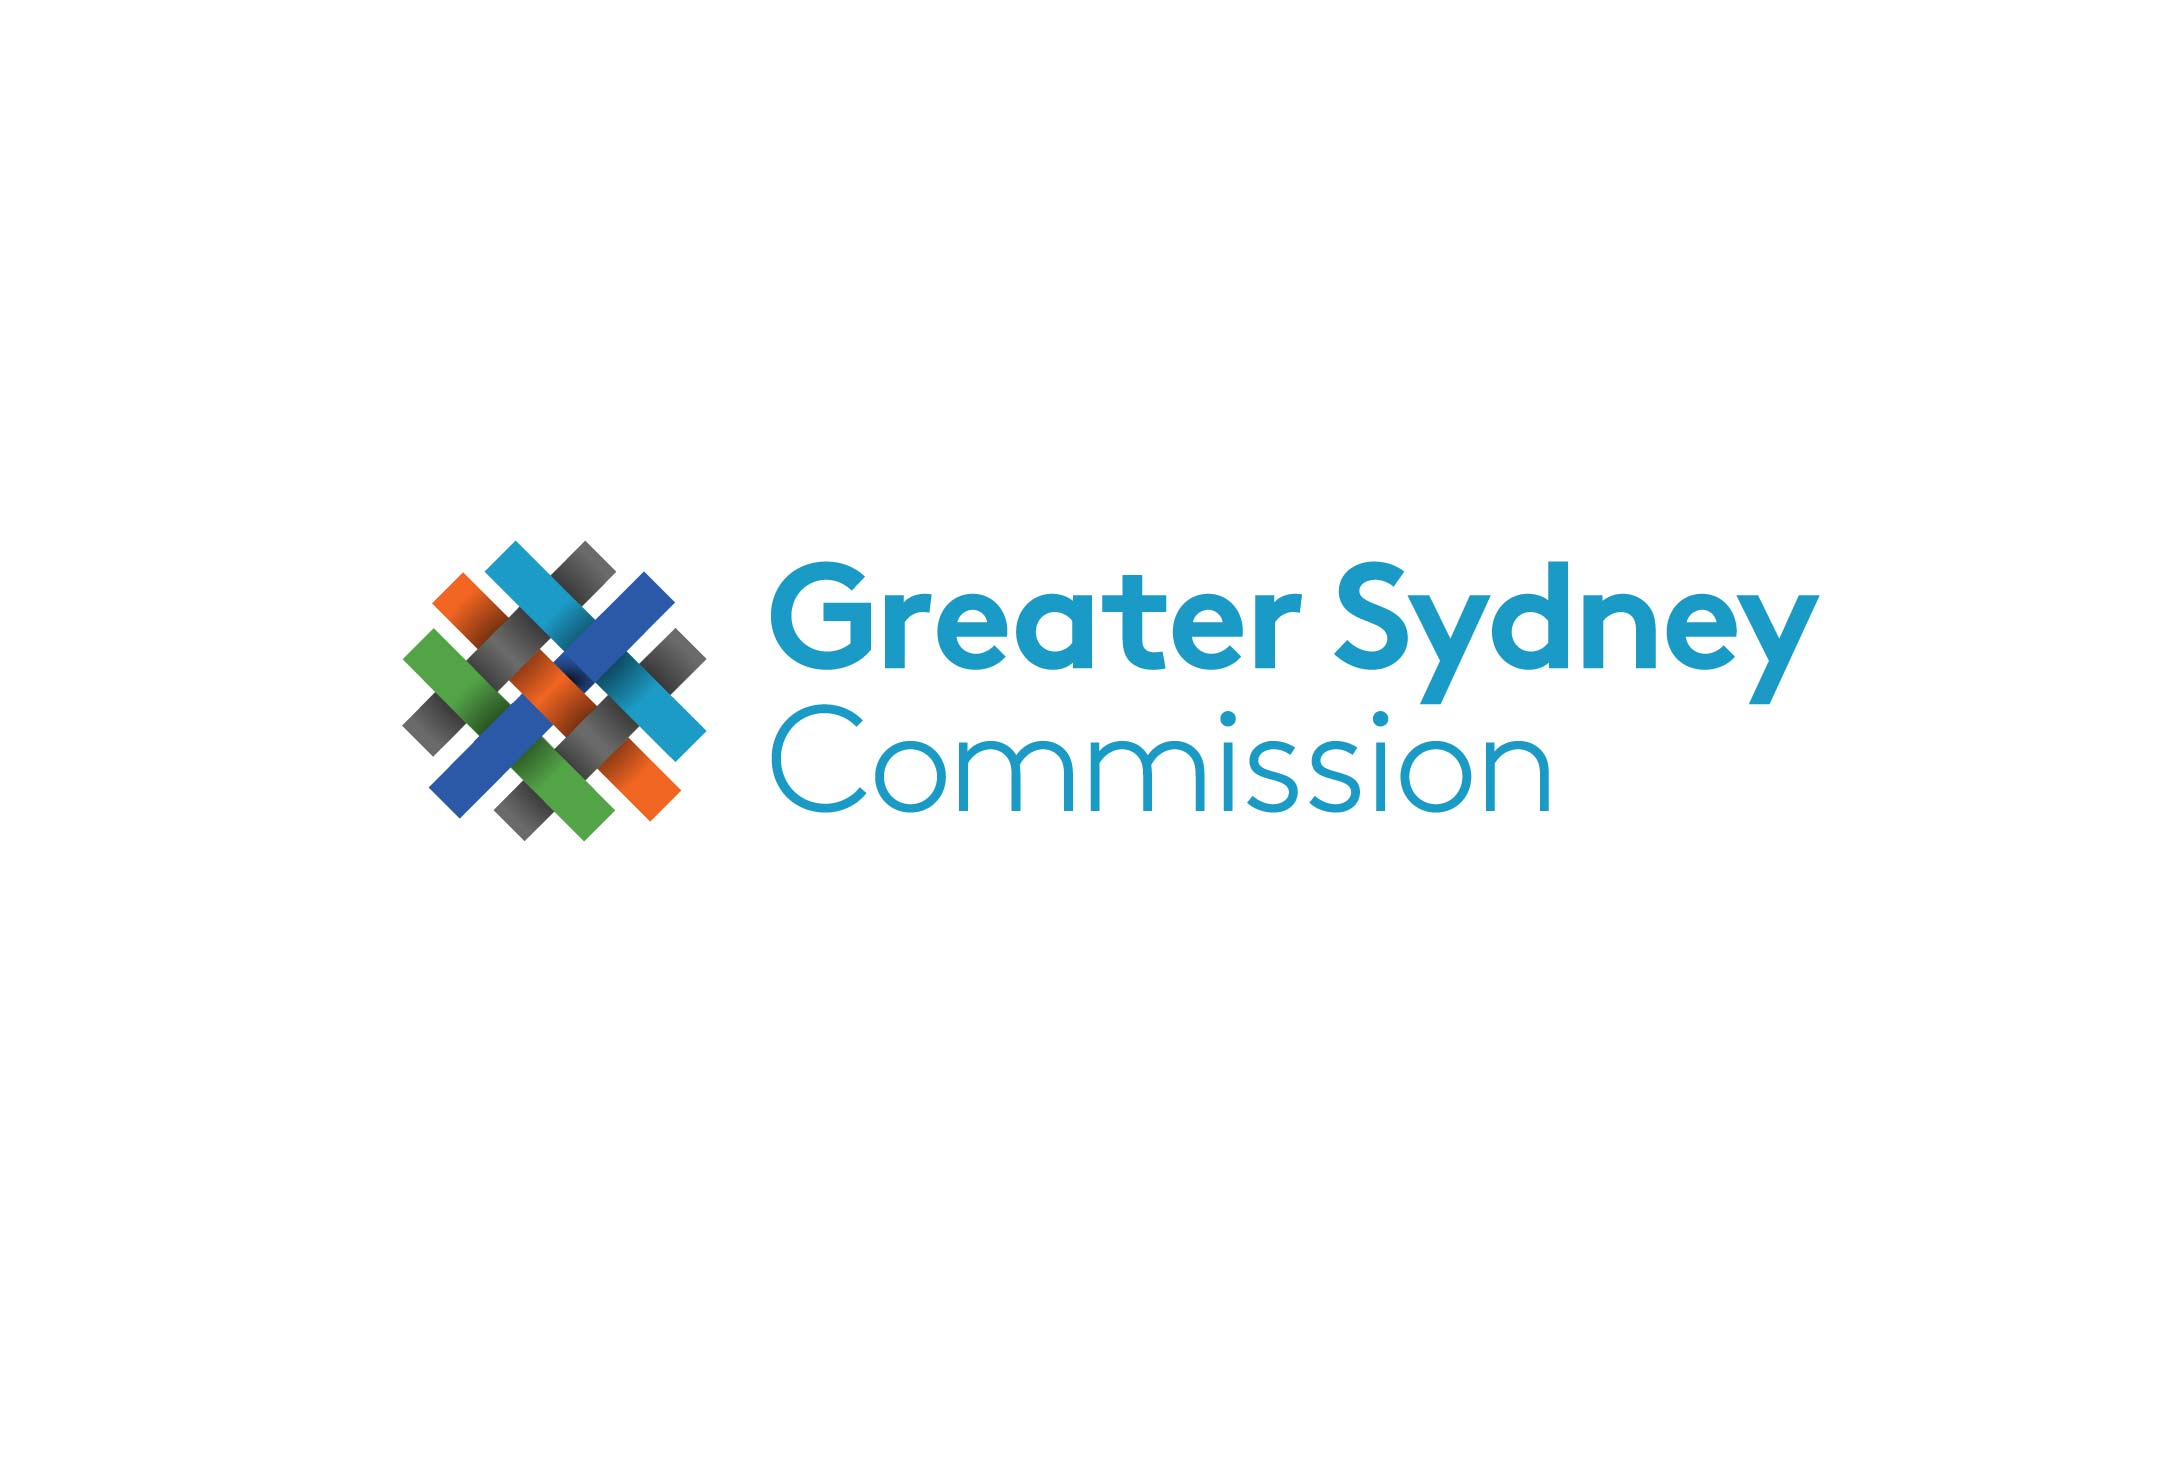 Greater Sydney Commission logo